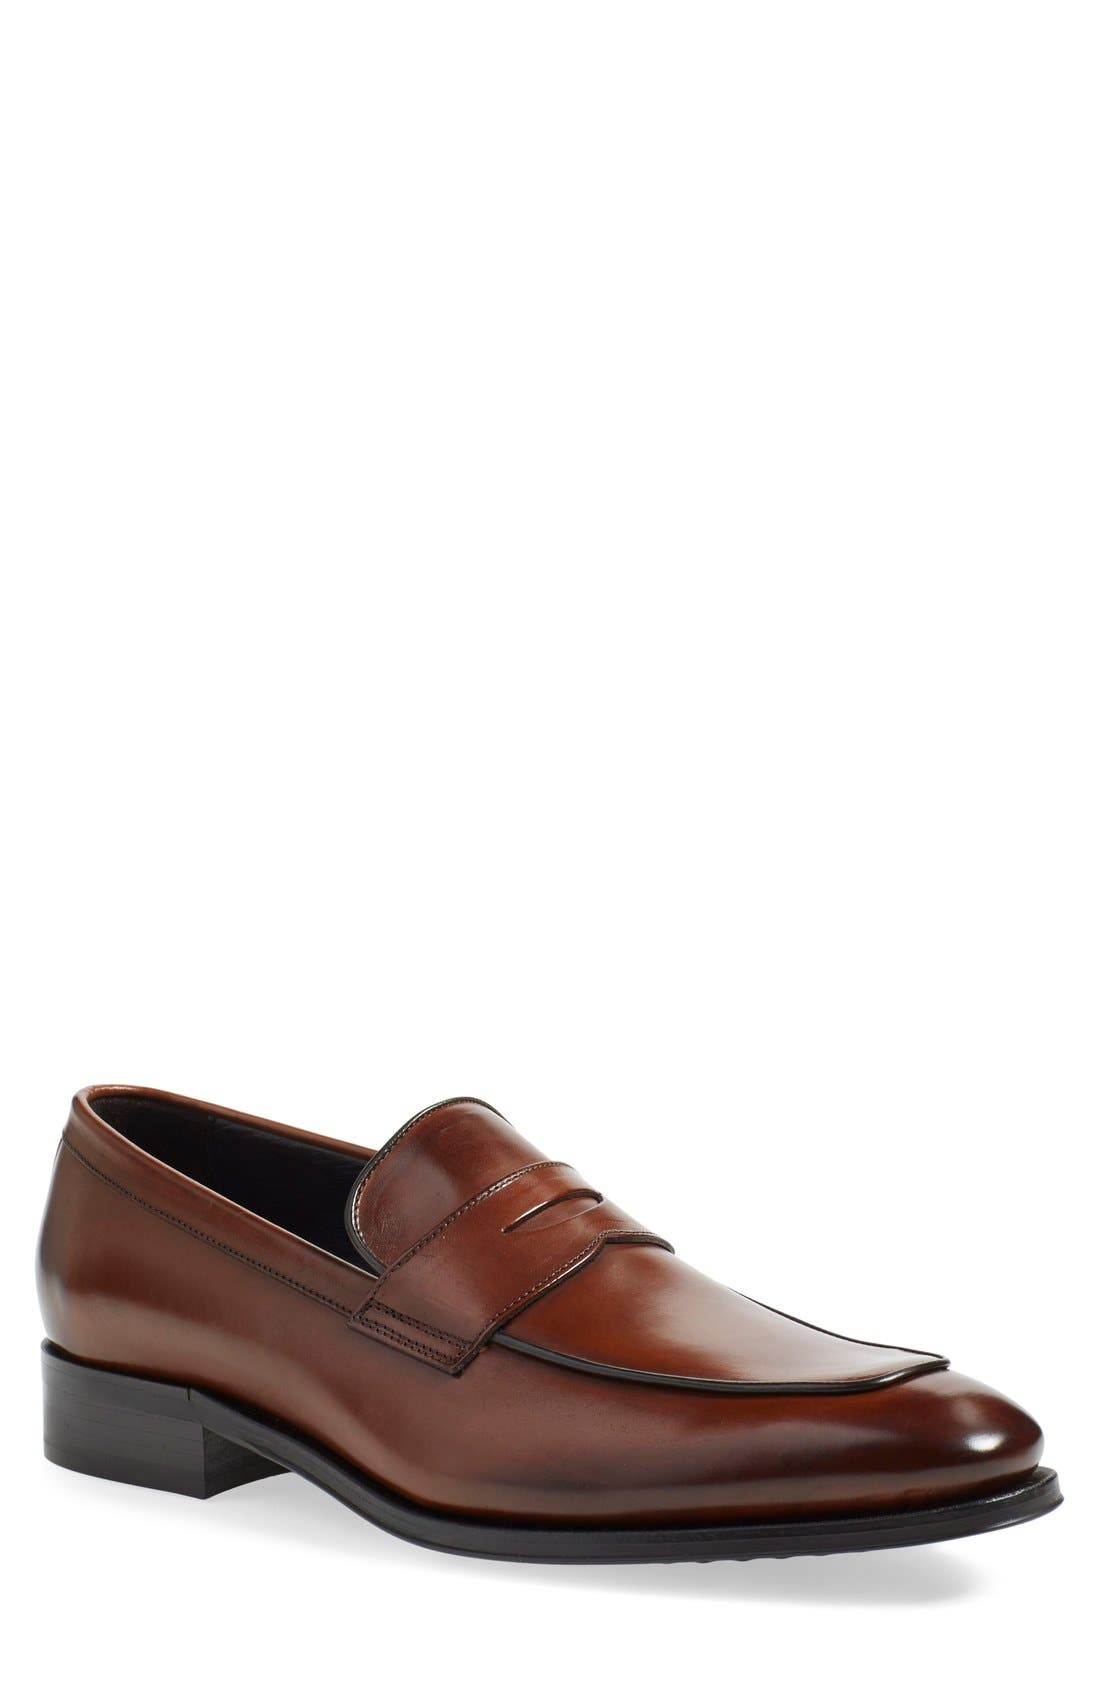 Main Image - To Boot New York Dupont Penny Loafer (Men)